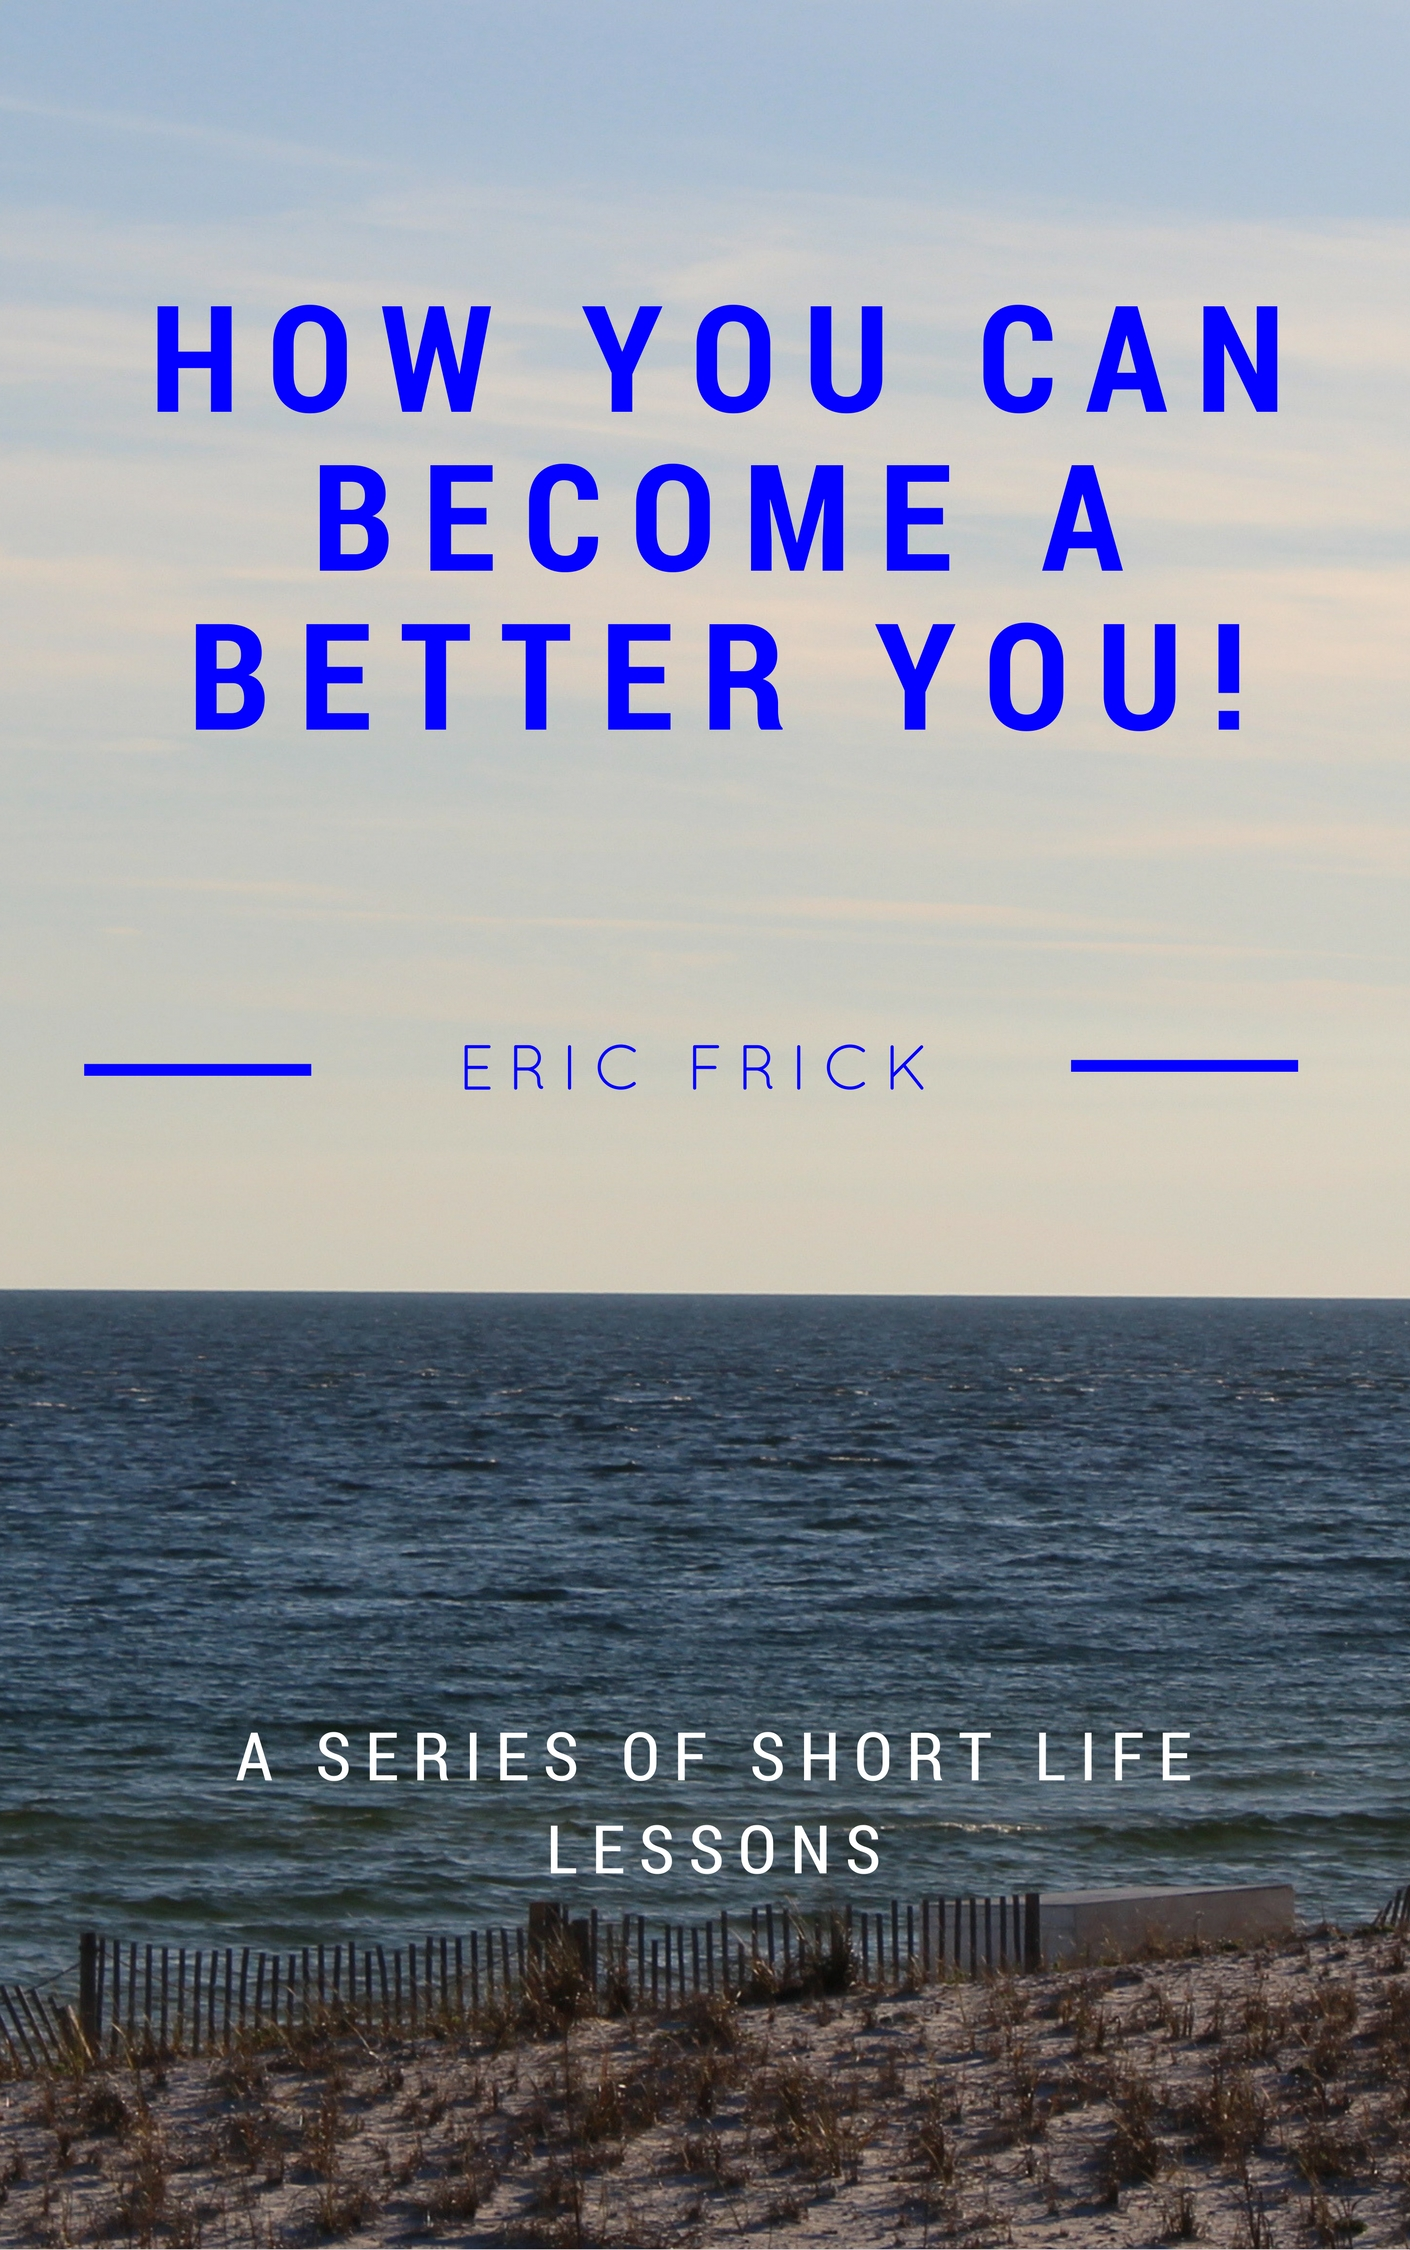 How You Can Become a Better You!